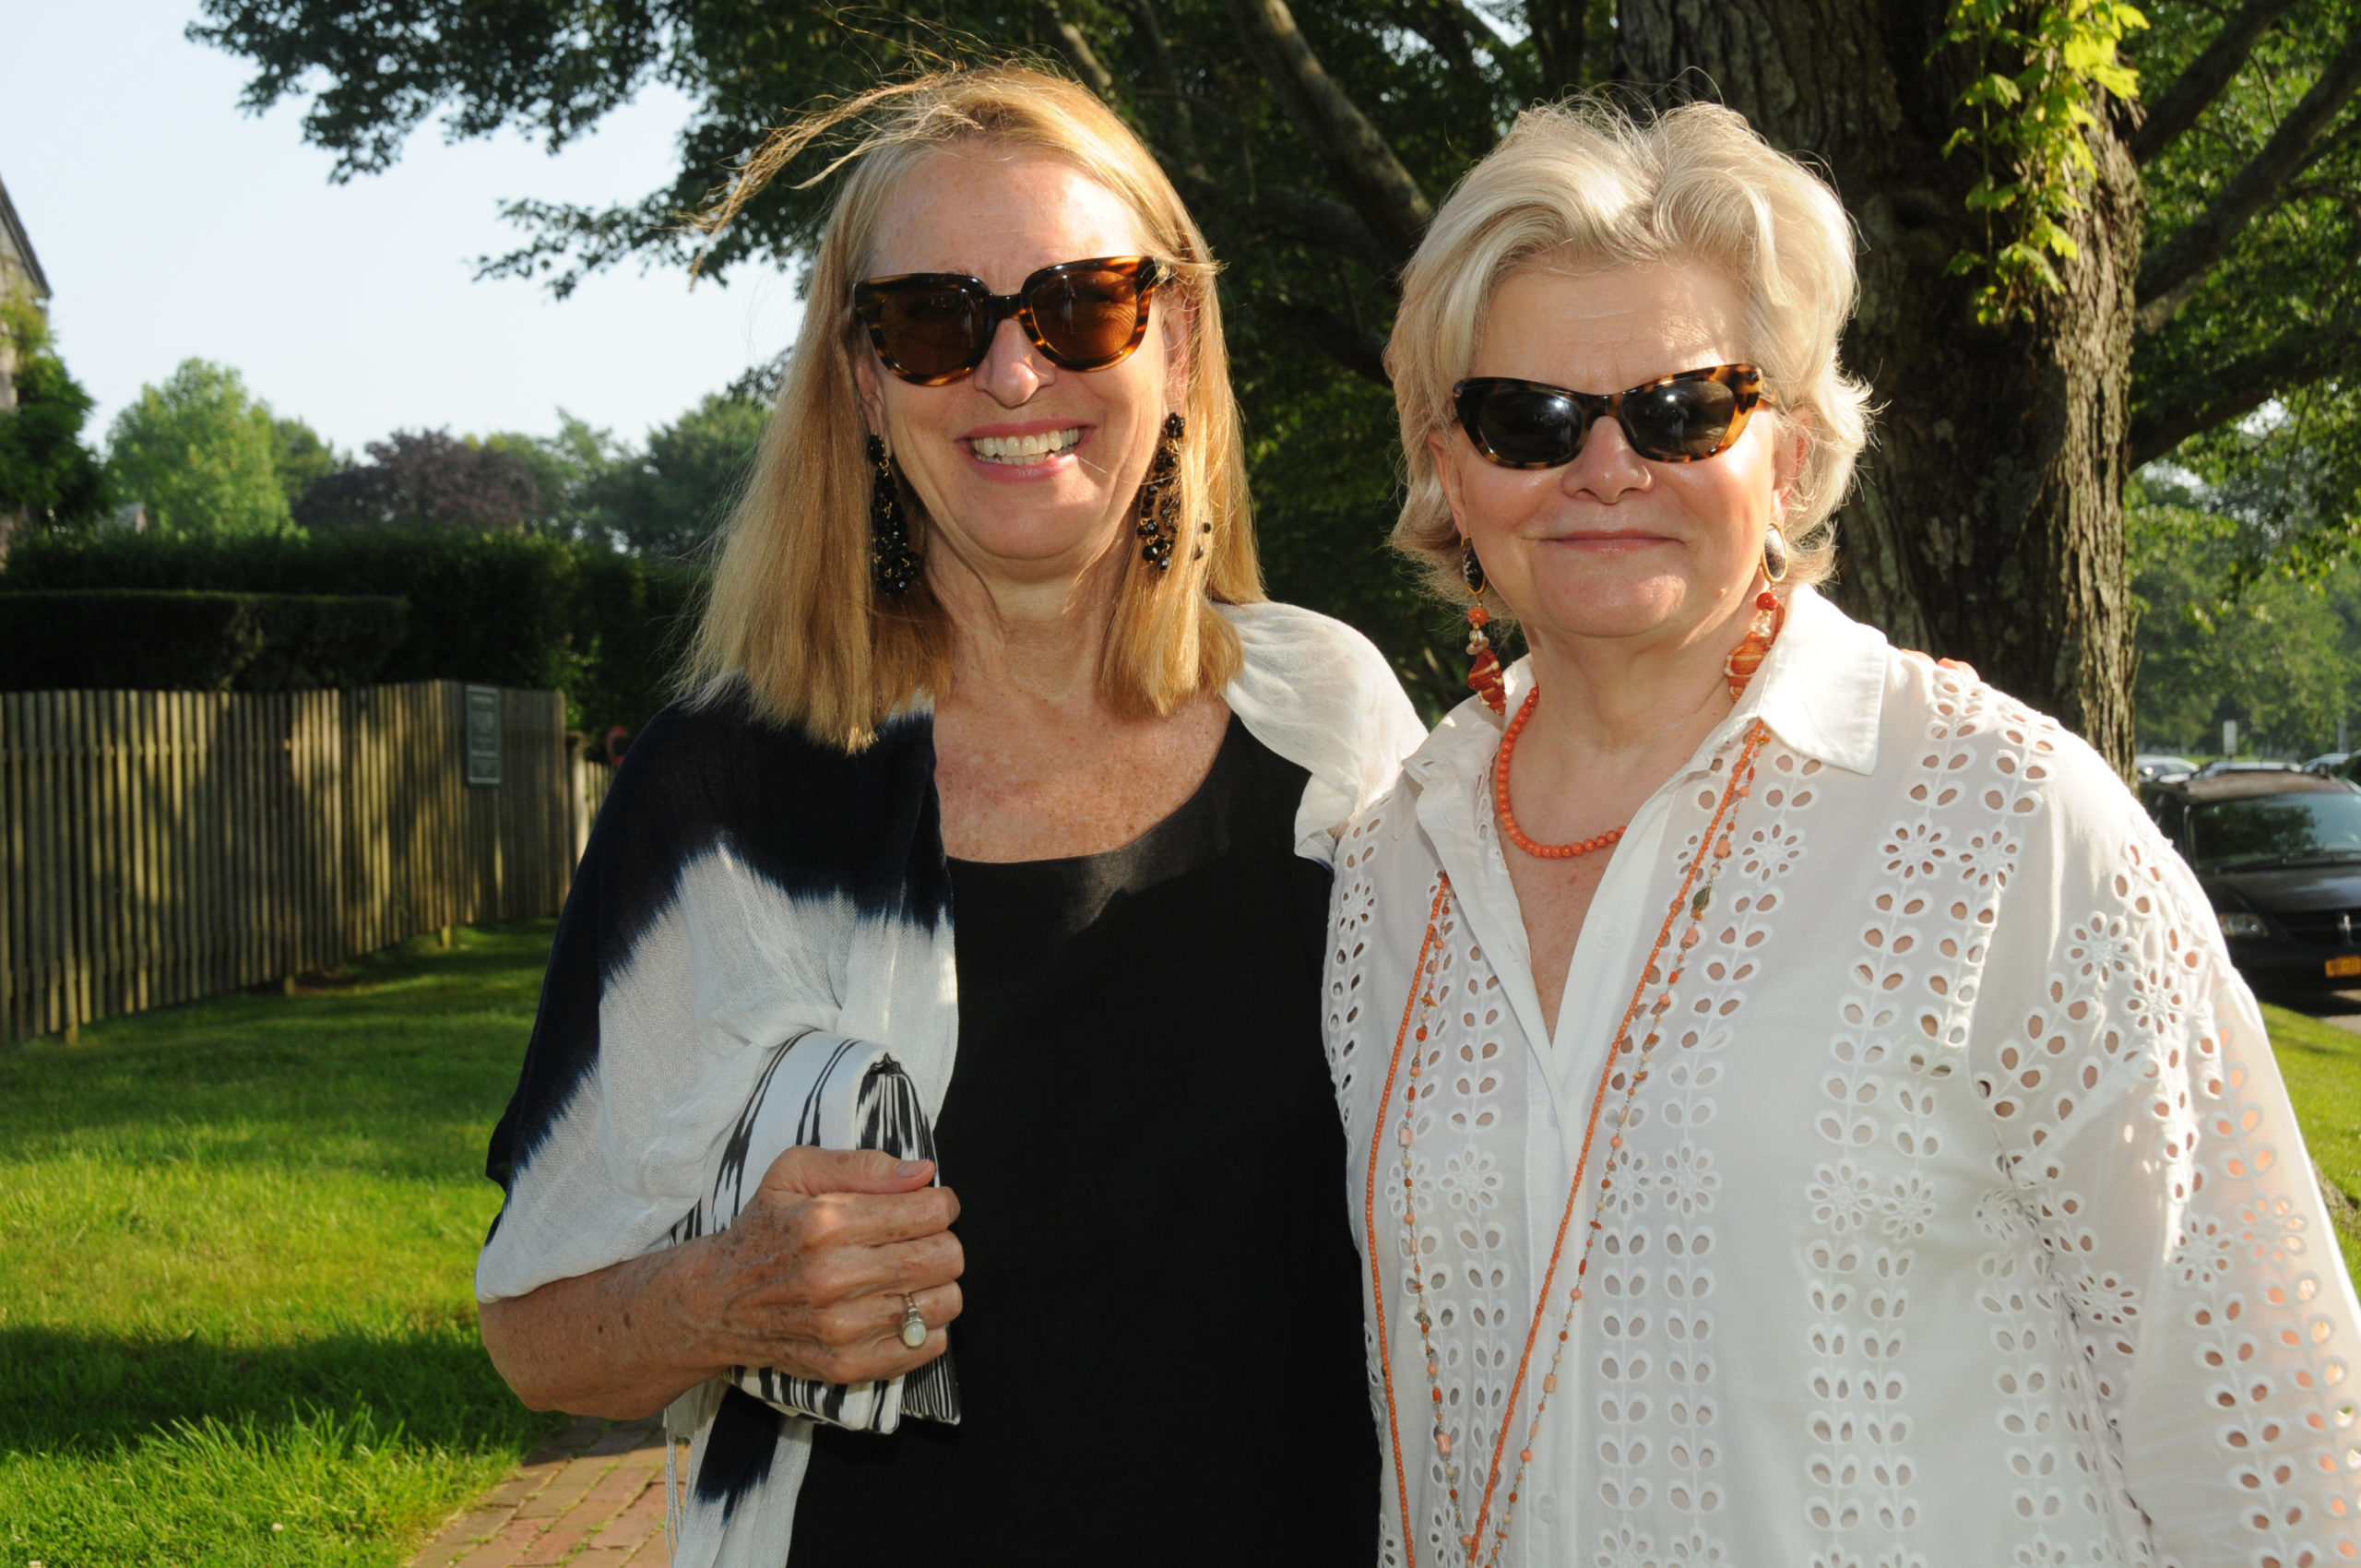 Anne Harris with interior designer Charlotte Moss at the  East Hampton Historical Society's preview benefit cocktail party for the 2021 East Hampton Antiques & Design Show on Friday evening on the grounds of Mulford Farm. RICHARD LEWIN